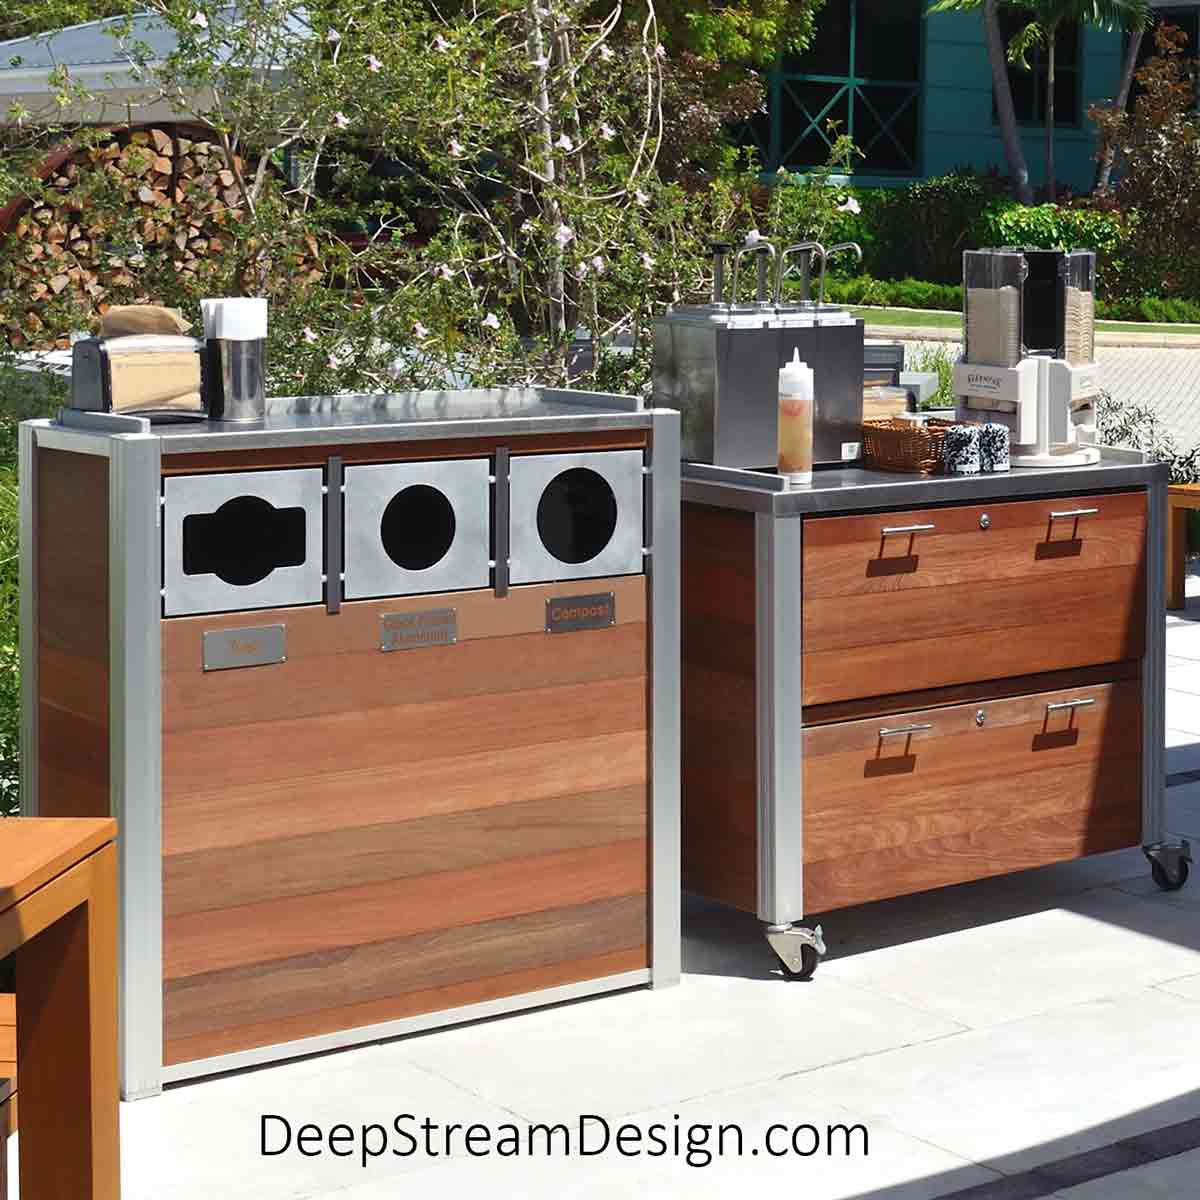 A modern custom outdoor restaurant trash receptacle on wheels next to a companion food service cart at a tropical island cafe. Both are made with a 316 stainless steel top, anodized aluminum frame, and exterior grade Ipe Tropical Hardwood.